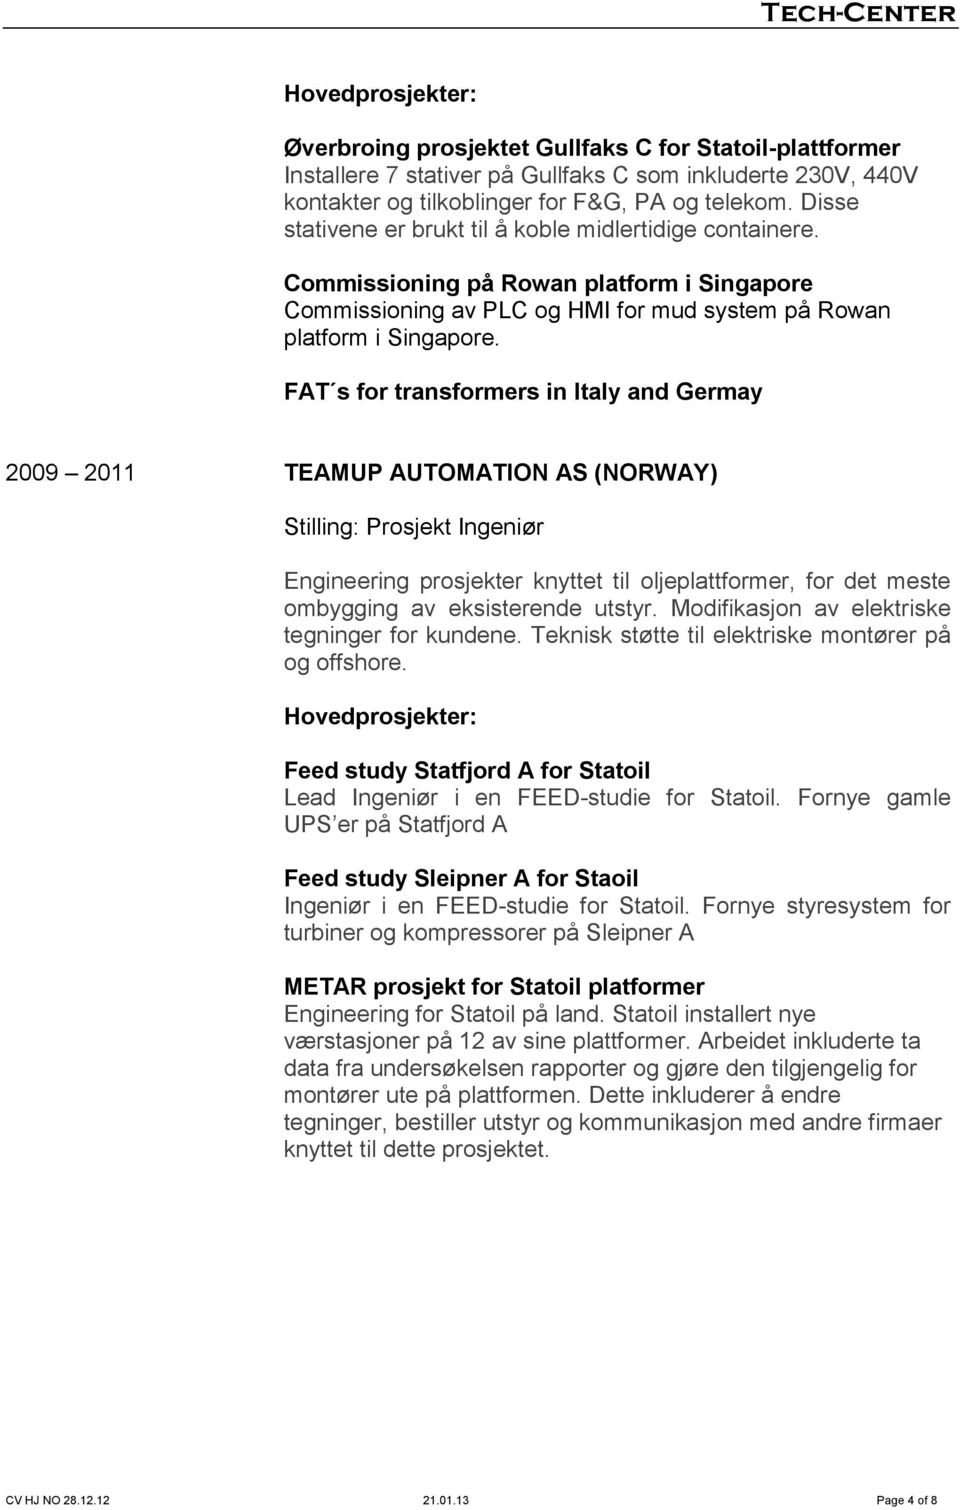 FAT s for transformers in Italy and Germay 2009 2011 TEAMUP AUTOMATION AS (NORWAY) Stilling: Prosjekt Ingeniør Engineering prosjekter knyttet til oljeplattformer, for det meste ombygging av